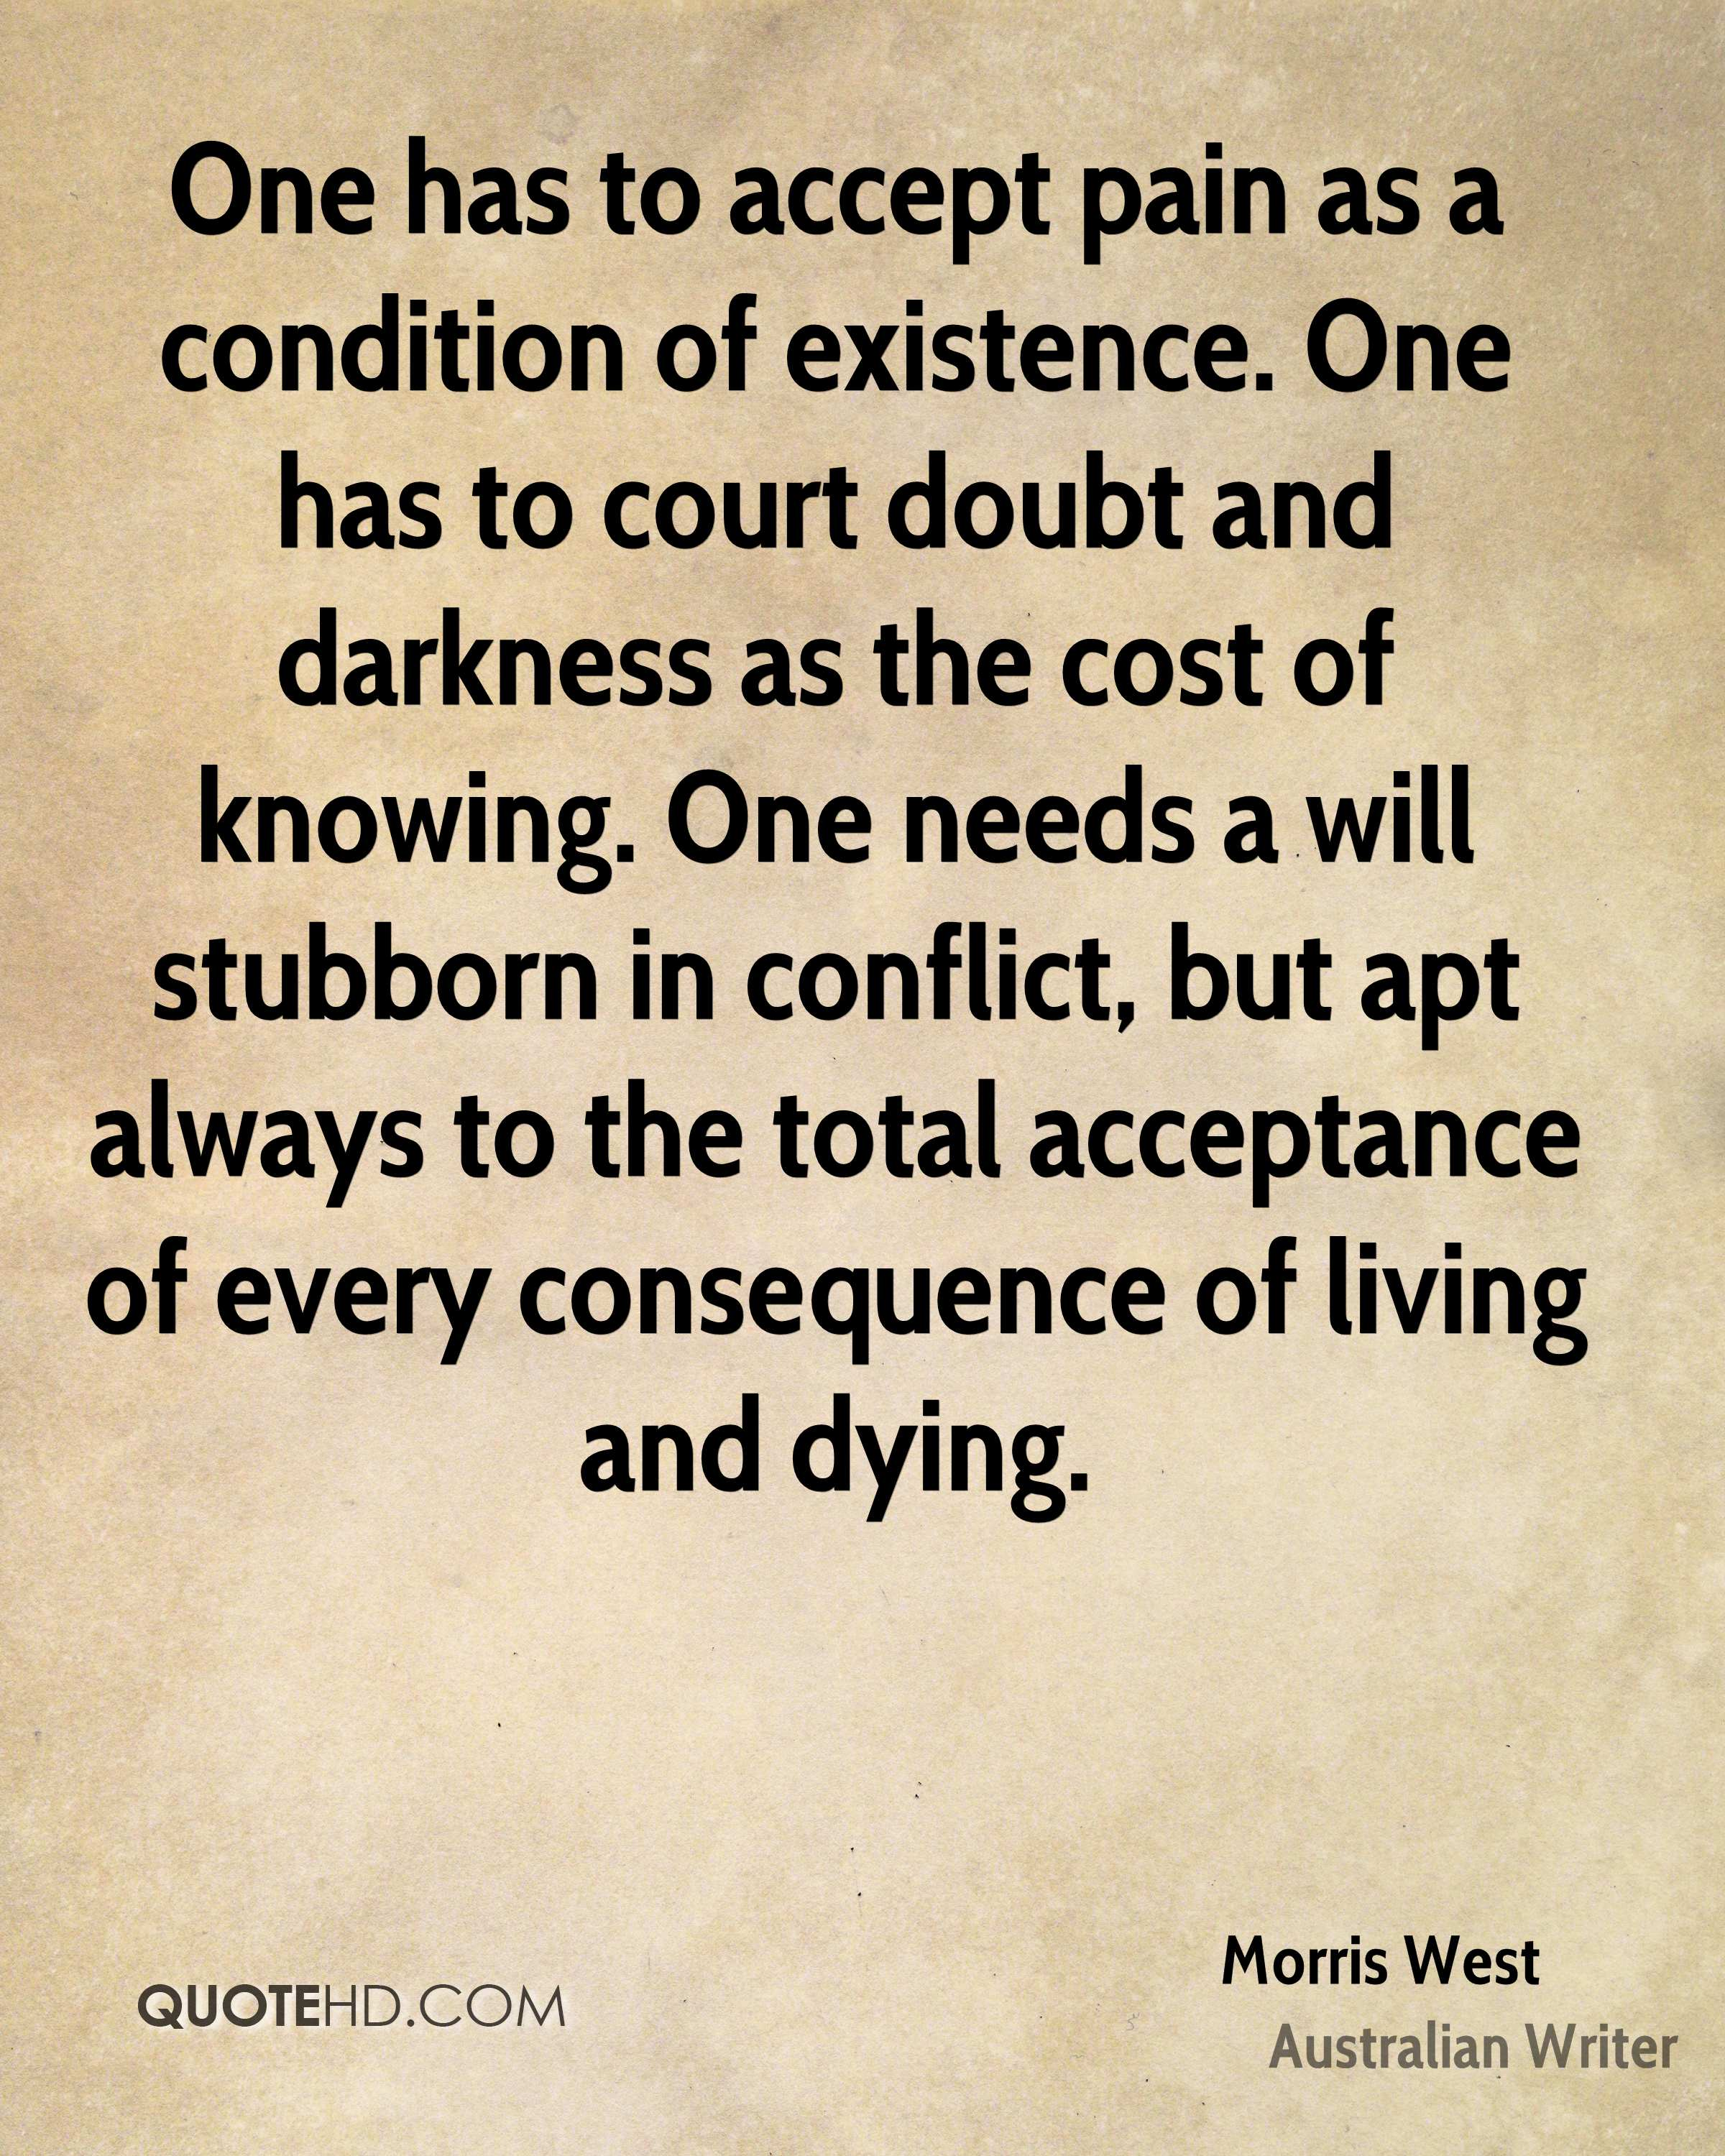 One has to accept pain as a condition of existence. One has to court doubt and darkness as the cost of knowing. One needs a will stubborn in conflict, but apt always to the total acceptance of every consequence of living and dying.